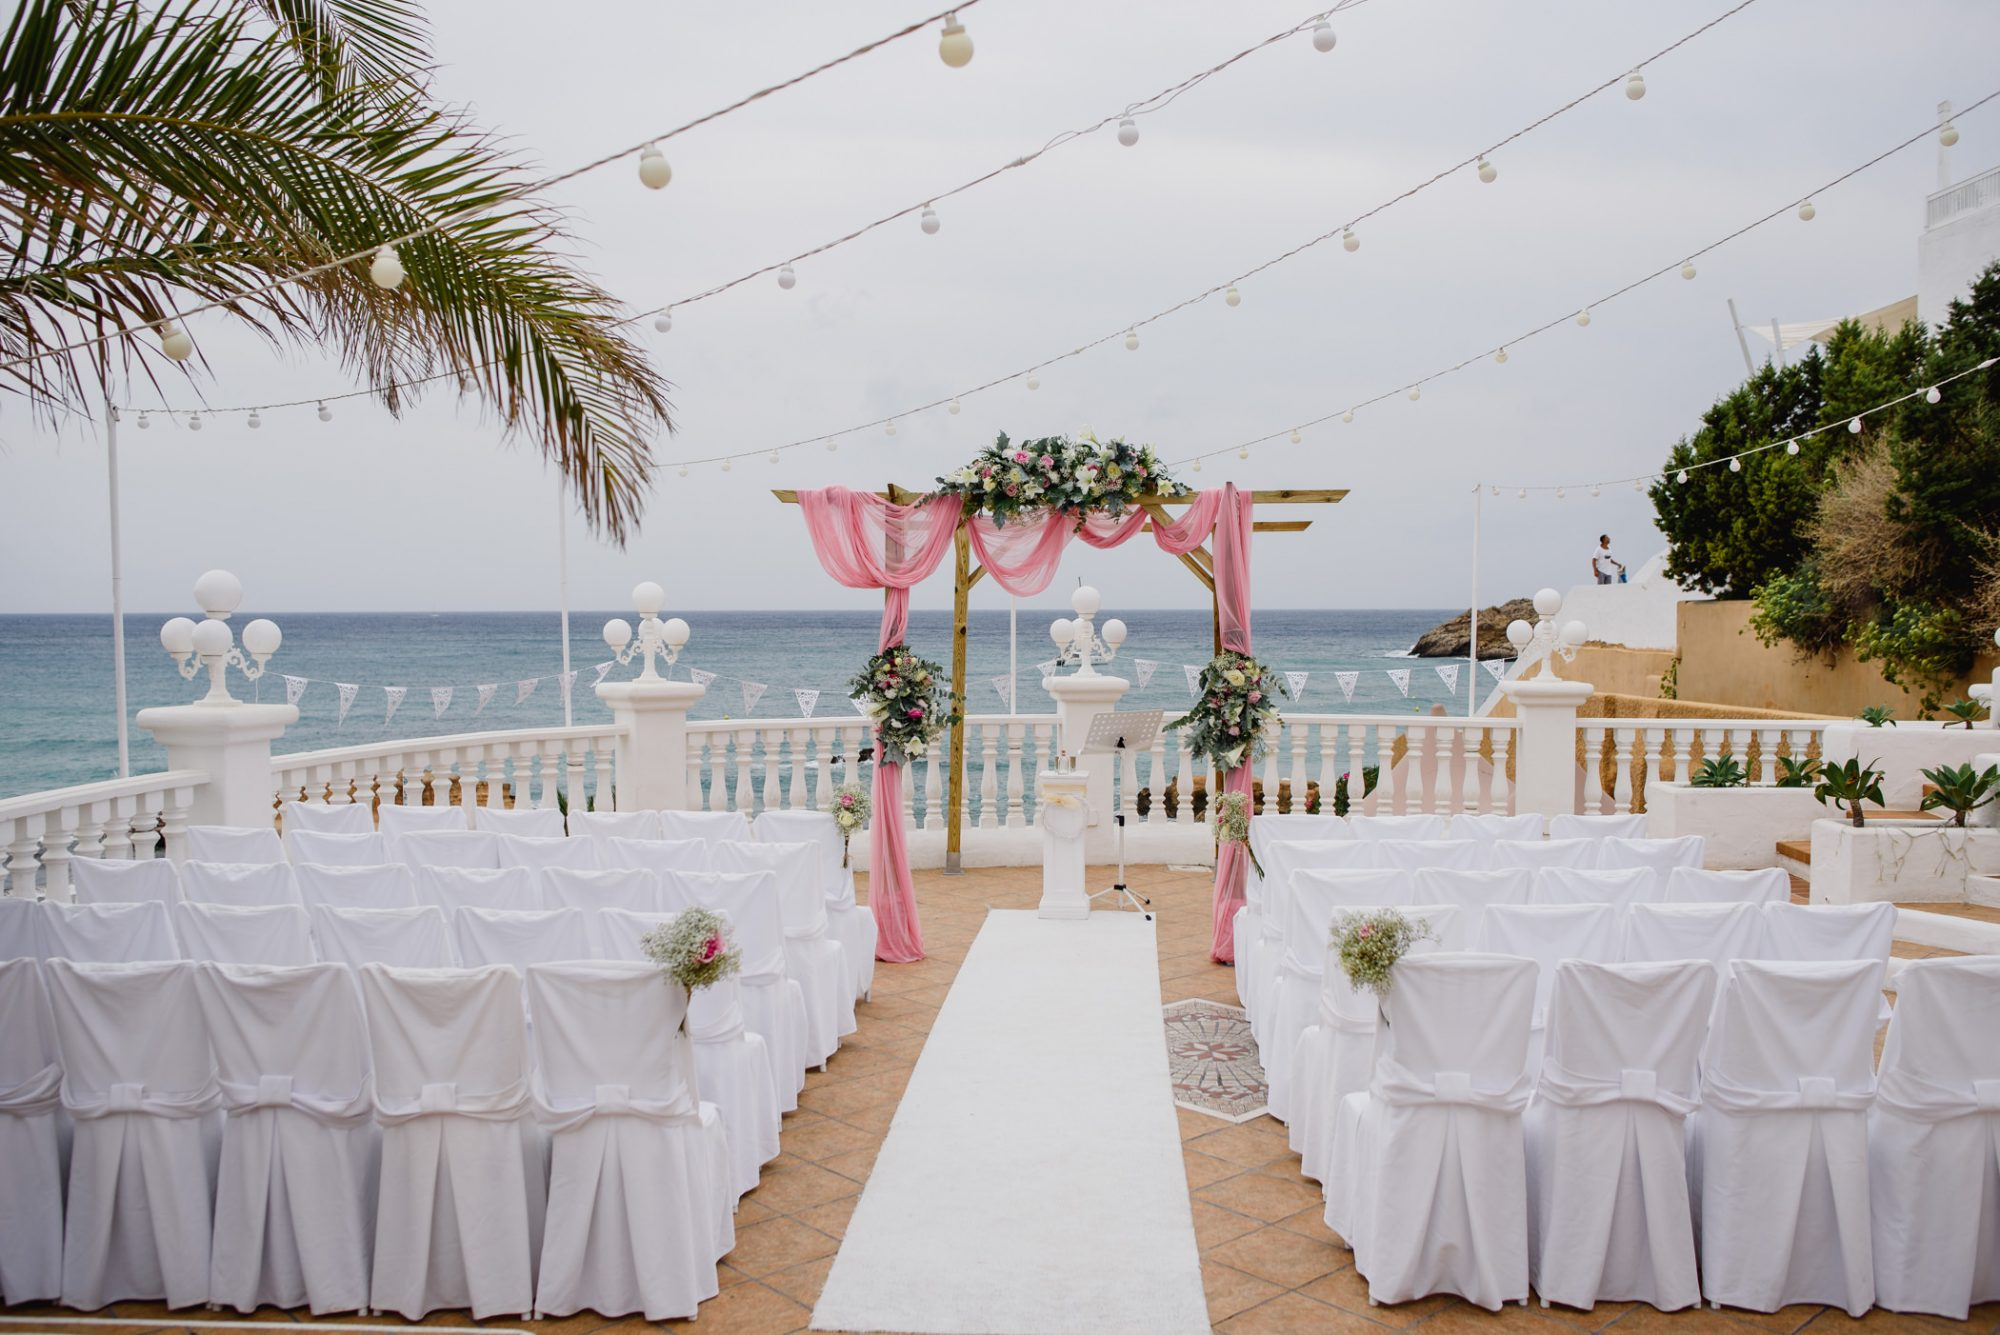 Venue Decor | Ibiza Wedding Shop - Perfect Weddings in Ibiza